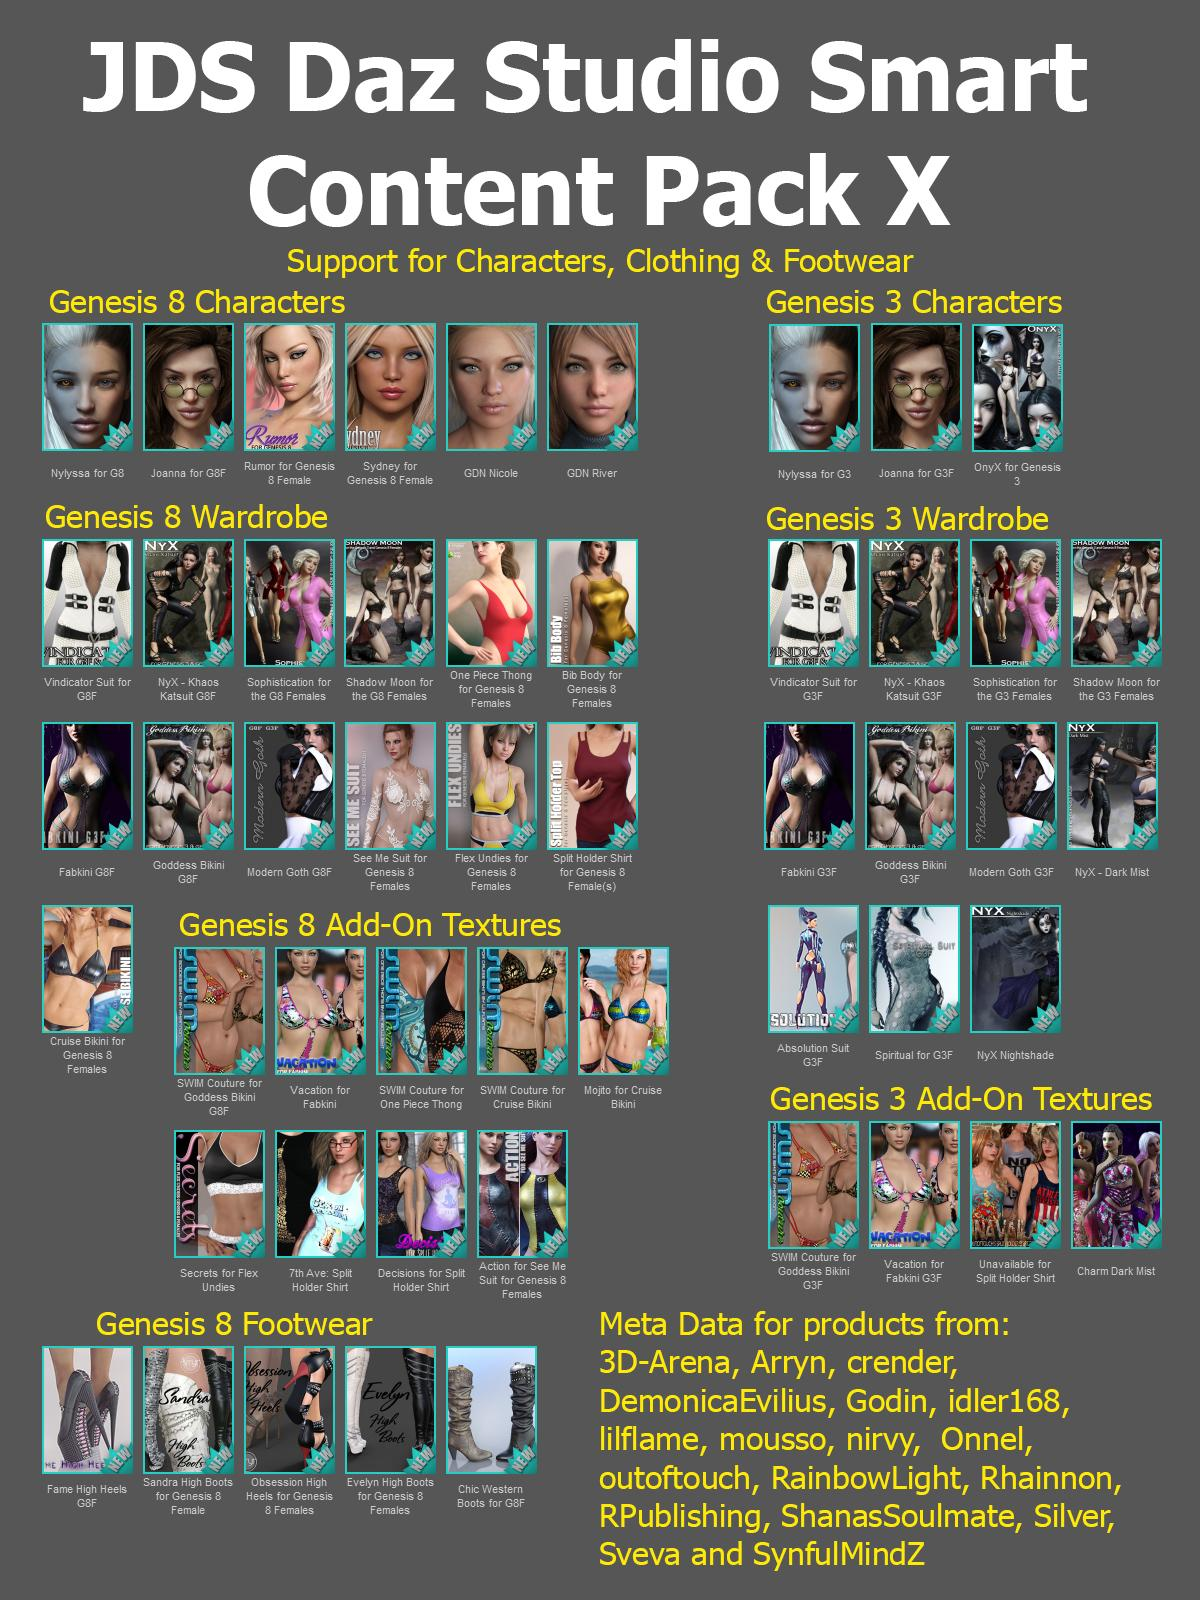 JDS Daz Studio Smart Content Pack X